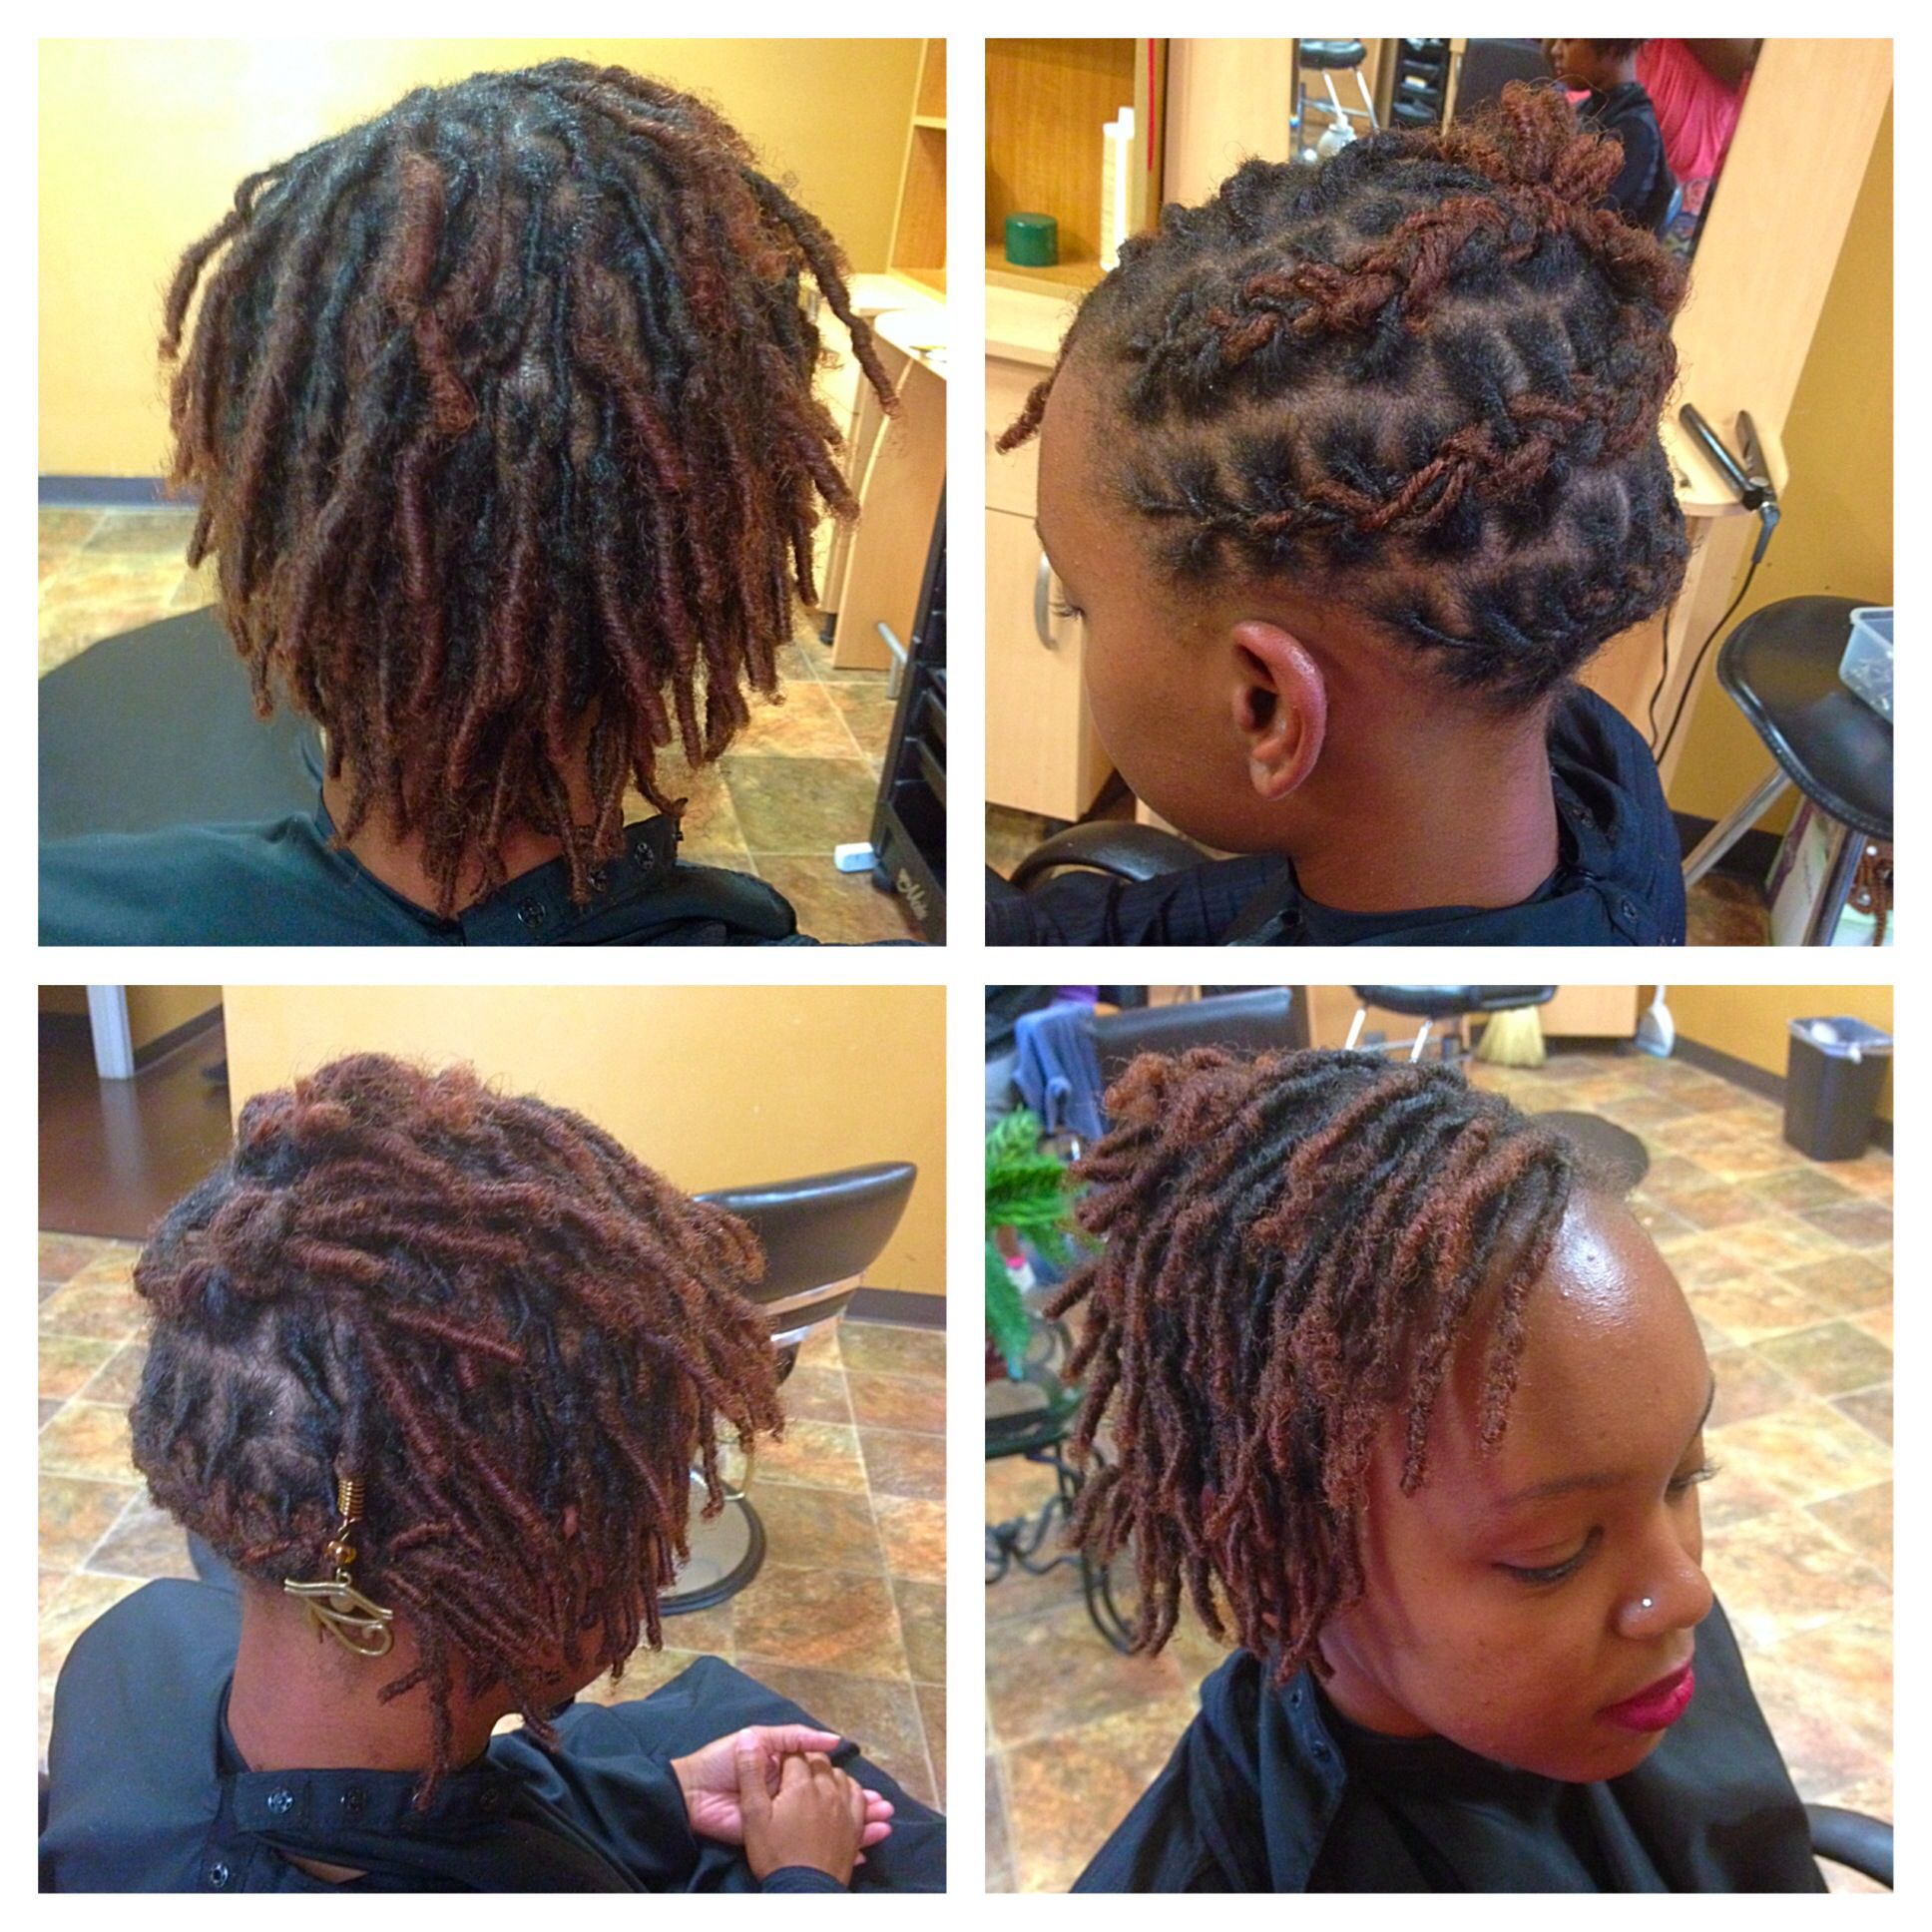 Pin By D Kia On Hair N Body Hair Styles Dreads Short Hair Short Dreads